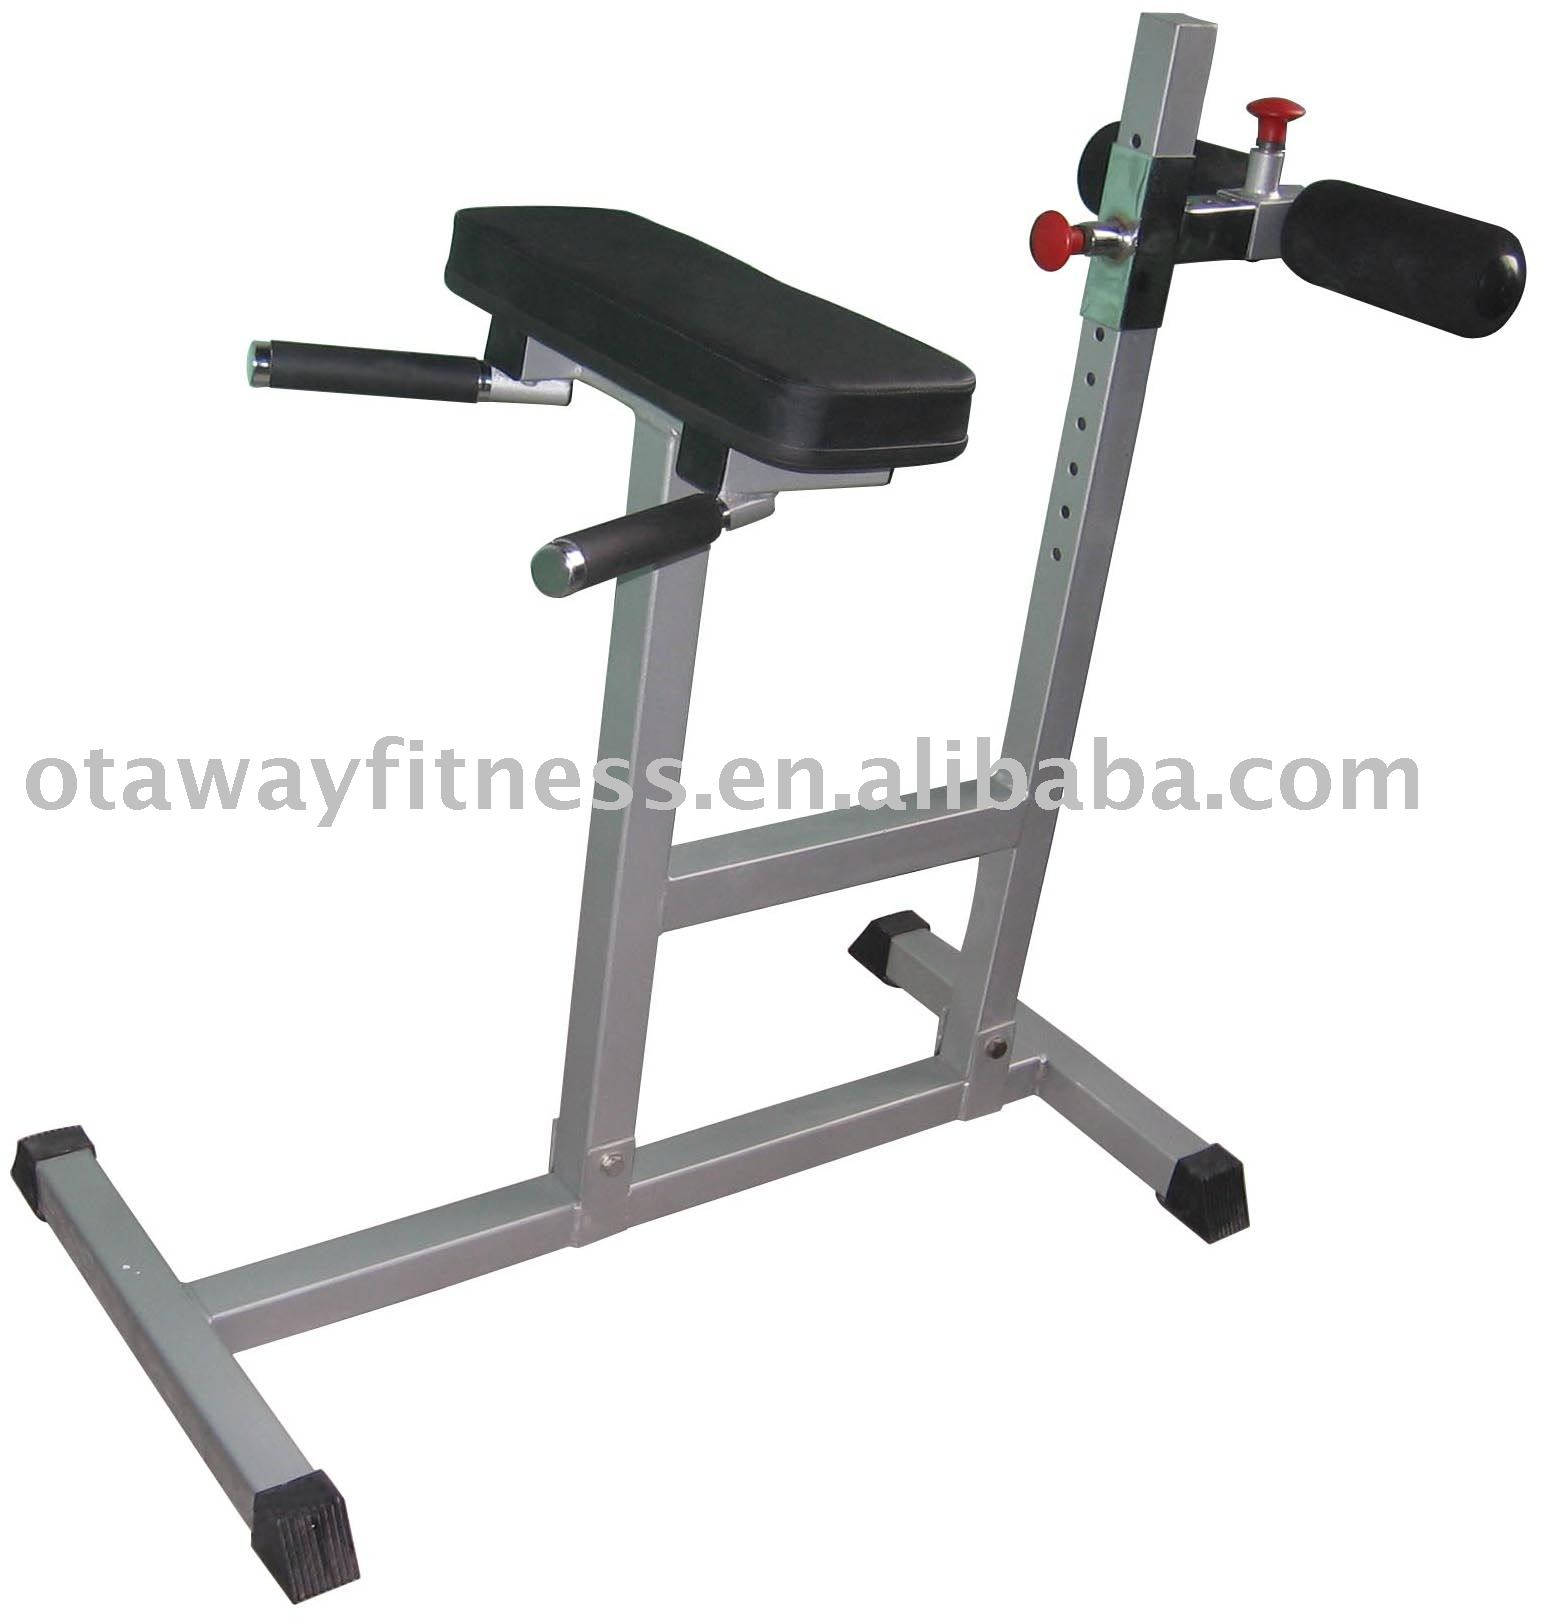 Roman Chair Fitness Equipment Roman Chair T2 008 Buy Fitness Equipment Weight Plate Loaded Machine Cardio Aerobic Machine Body Building Equipment Product On